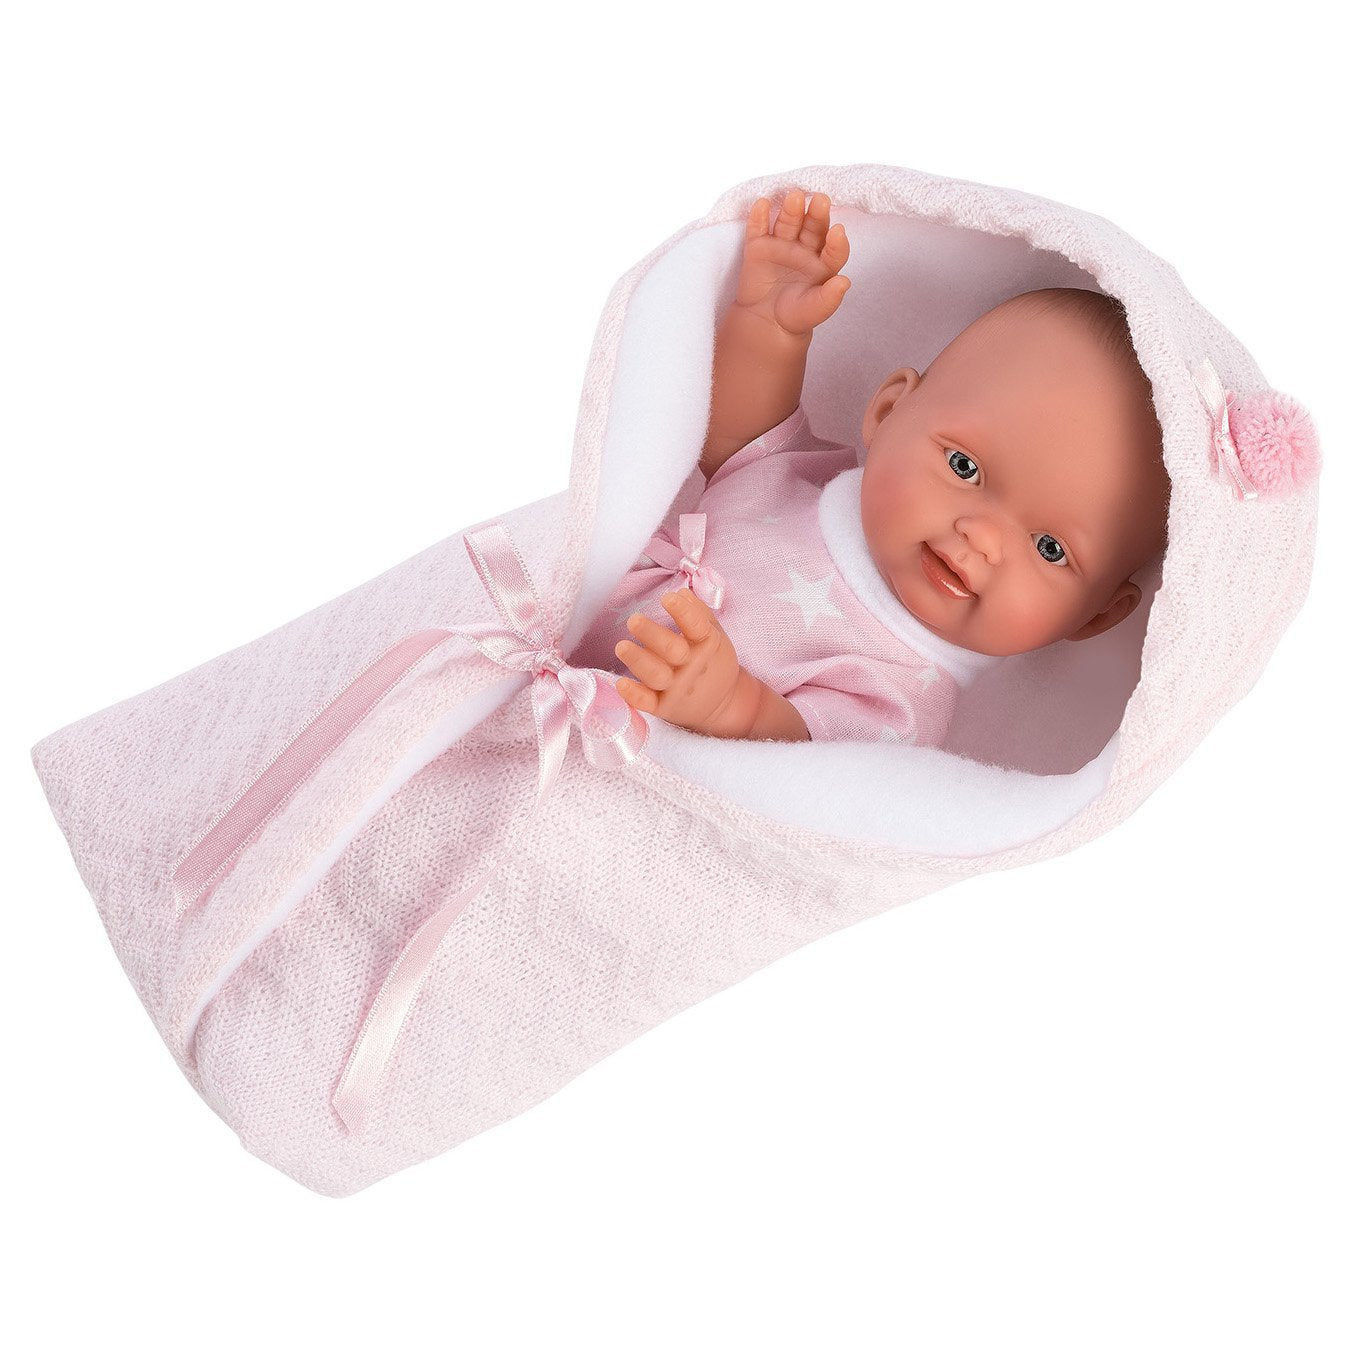 "PRE-ORDER: Brielly 10.2"" Baby Girl Doll"